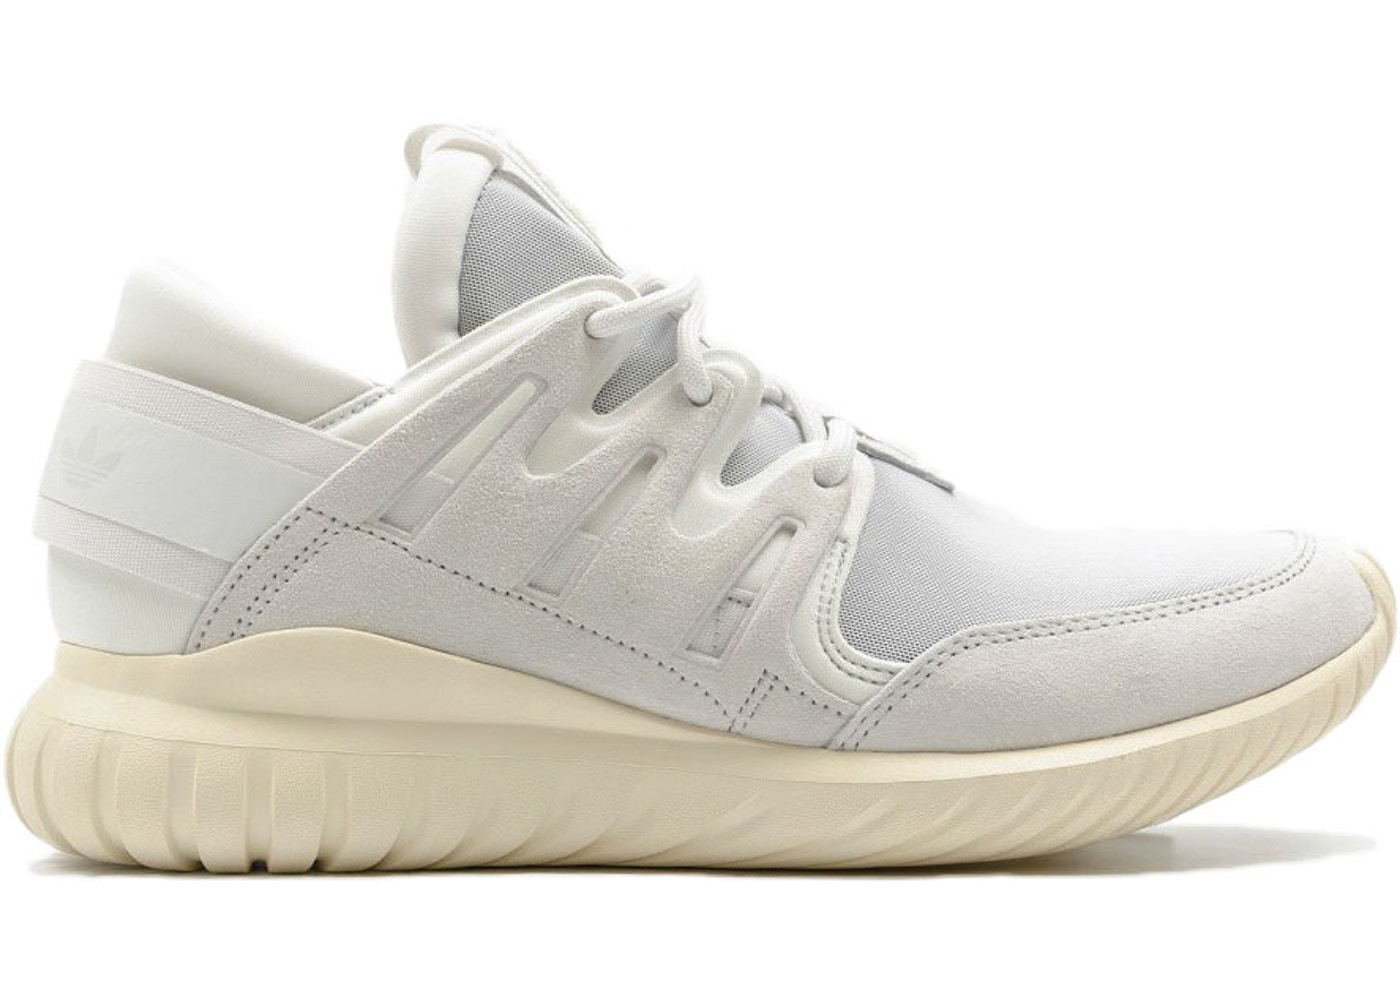 premium selection d724f c1738 Sell. or Ask. Size --. View All Bids. adidas Tubular Nova Vintage White